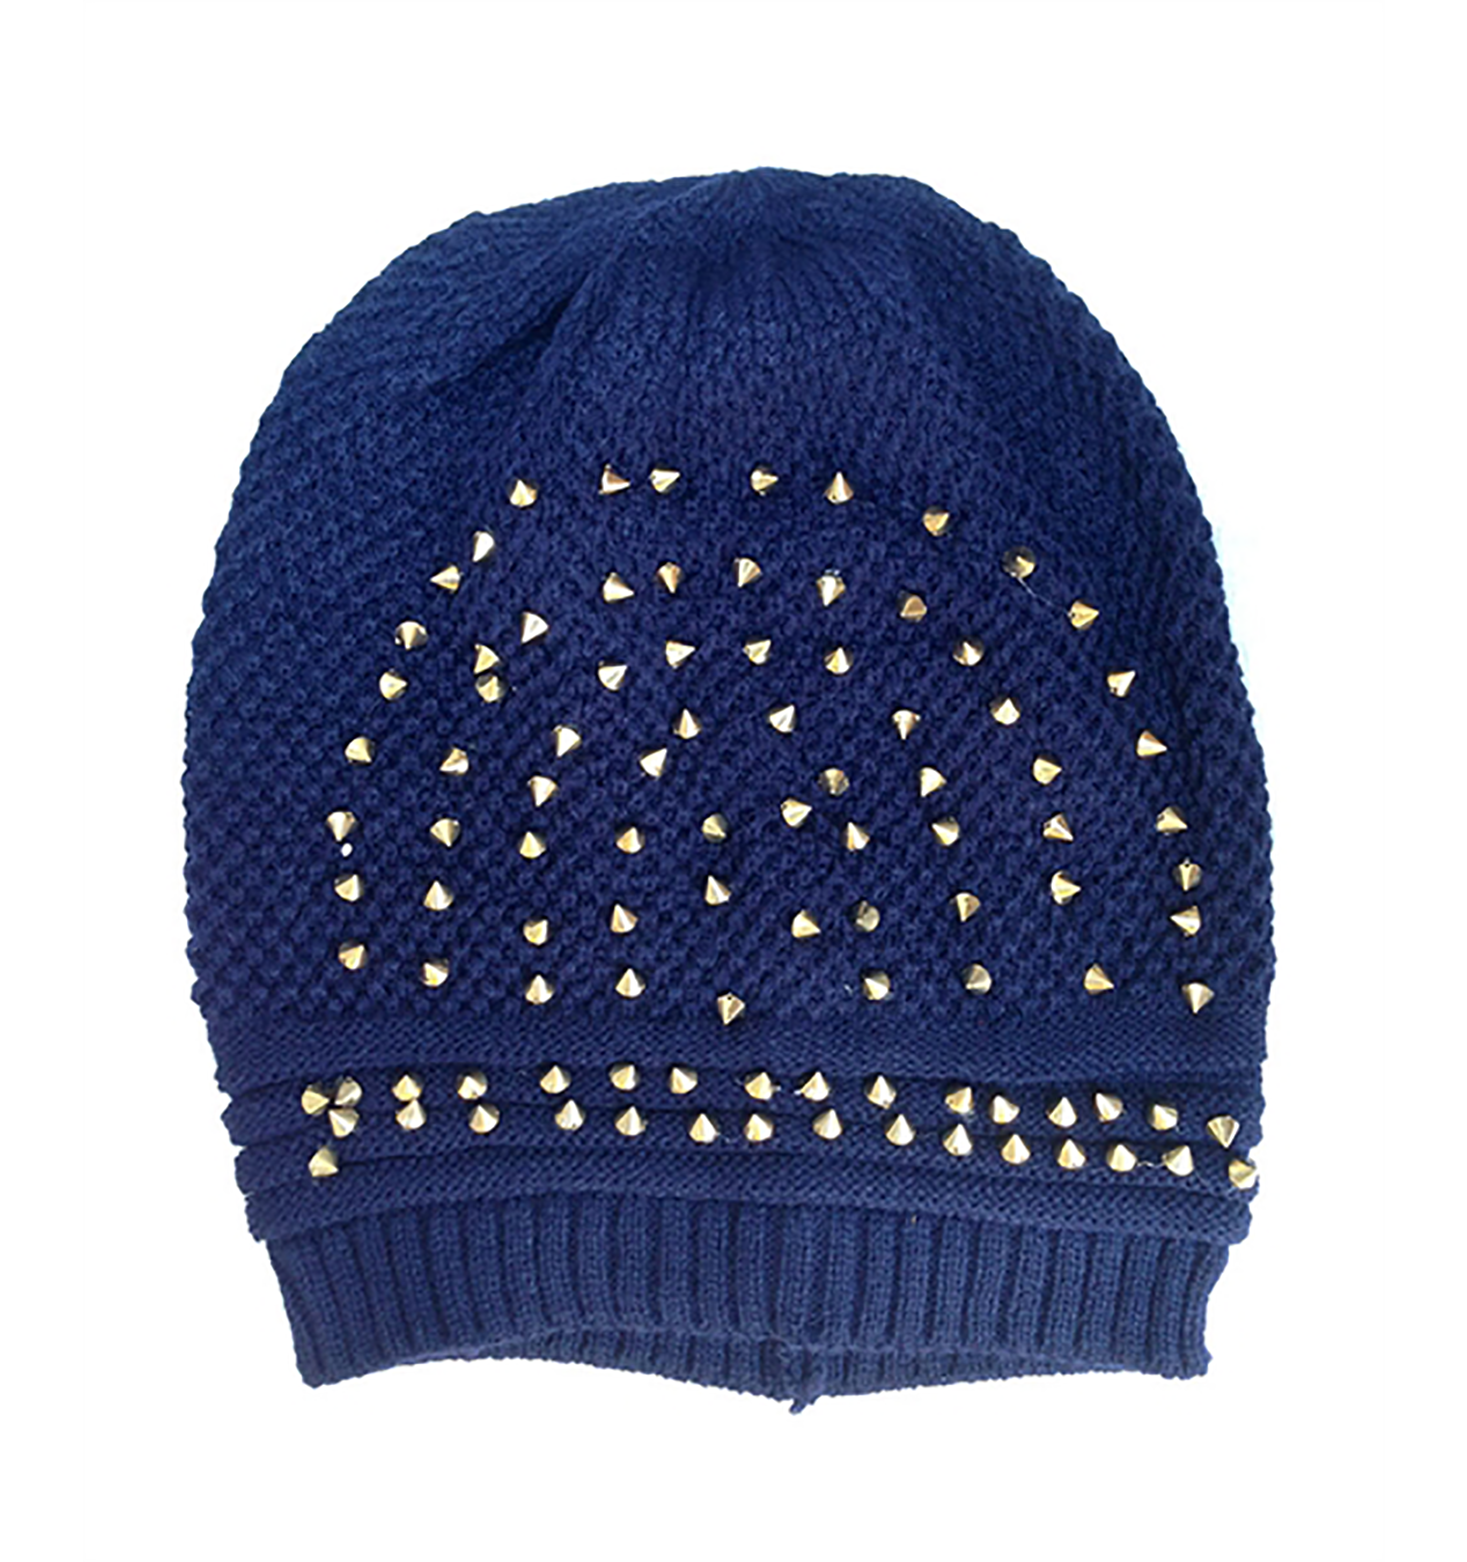 The Studded Beanie - filthy-rich-vision